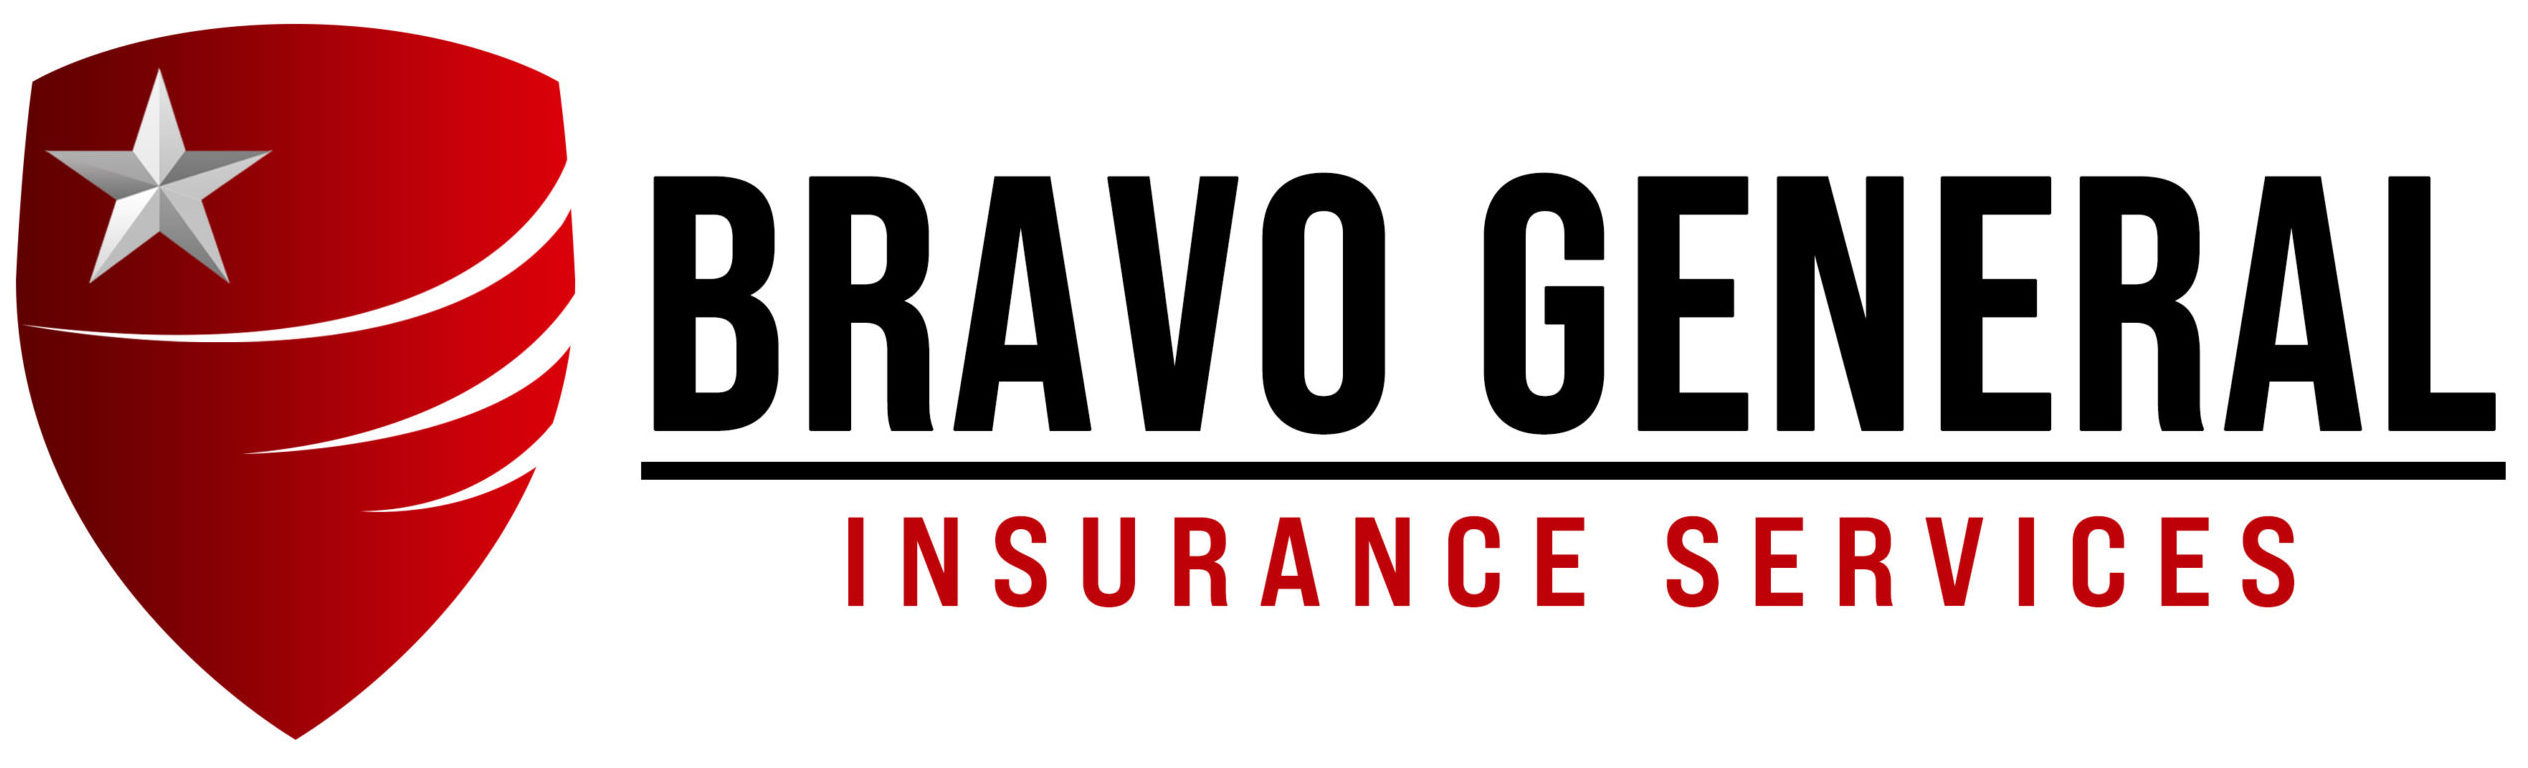 Bravo General Insurance Services